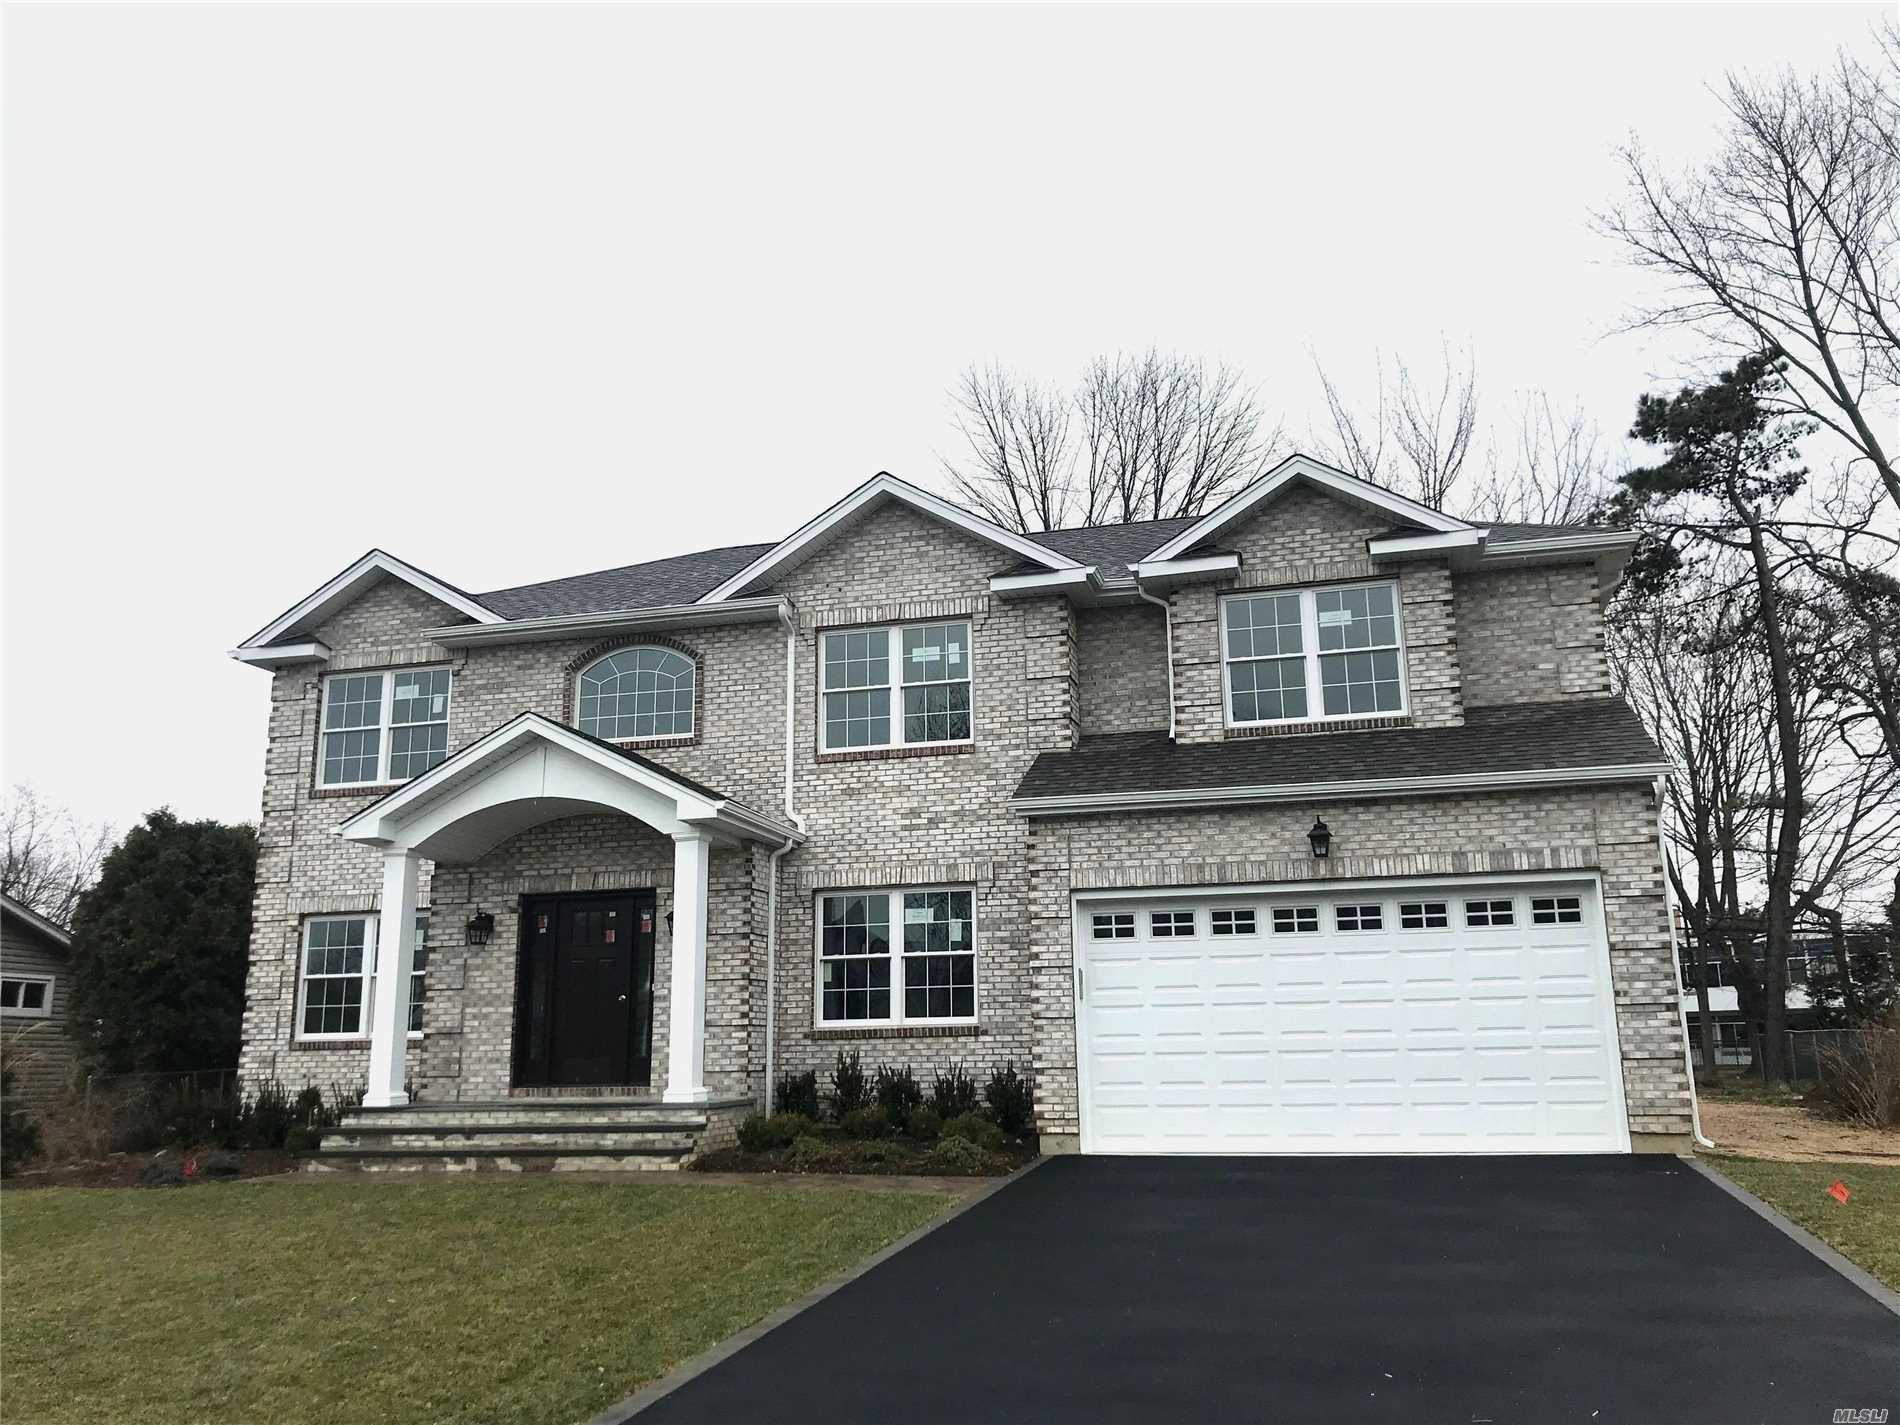 Jericho School District! New Construction In West Birchwood! This Five Bedroom Home Has A Guest Suite With Full Bath On First Floor, Chefs Eik, Family Room With Gas Fireplace & Large Entertaining Rooms. Second Level Has The Large Master Bedroom With En Suite Bath, Another 2 Bedrooms With Jack N Jill Bath, Bedroom, Bath & Laundry! Gas Heating & Cooking, Cac, Igs. Must See!! Photos Are Of A Model Home.